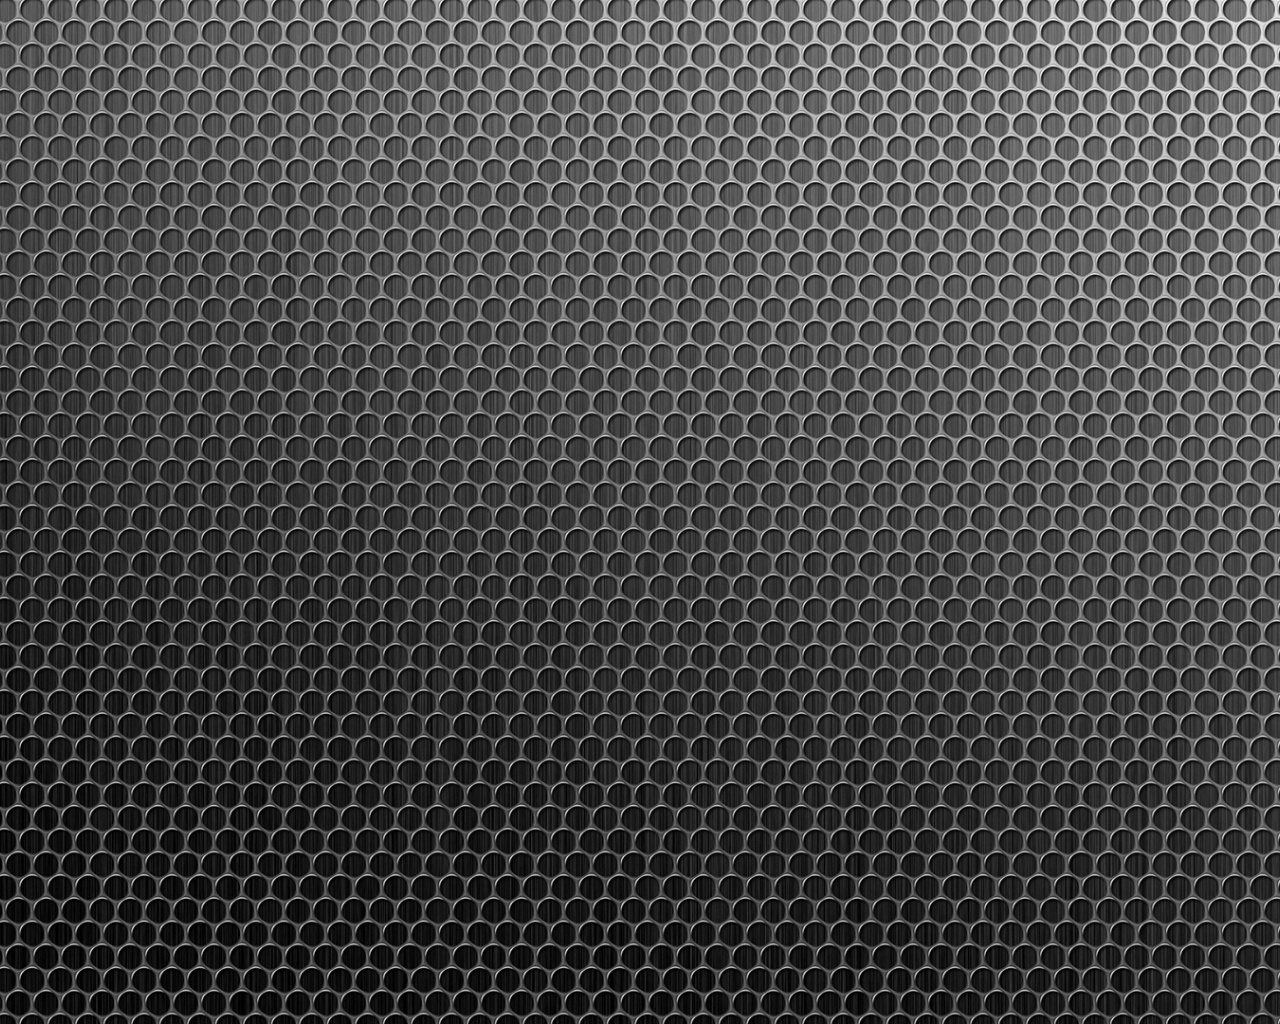 1366x768 grey honeycomb pattern - photo #4